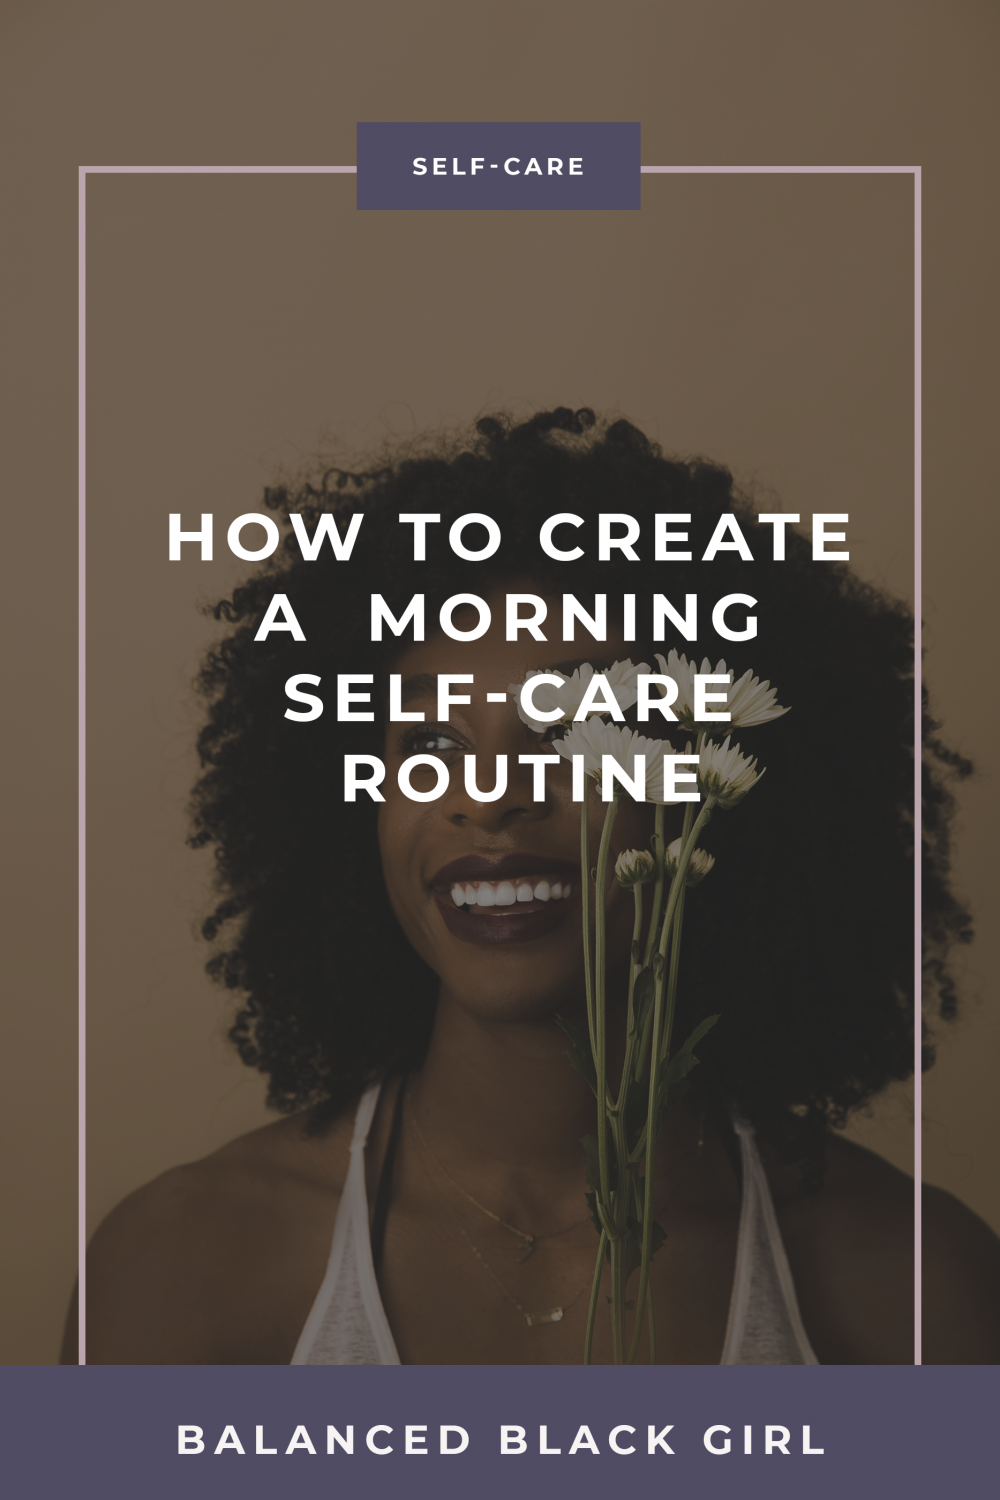 Episode 20: How to Create Your Ideal Morning Routine for Self-Care